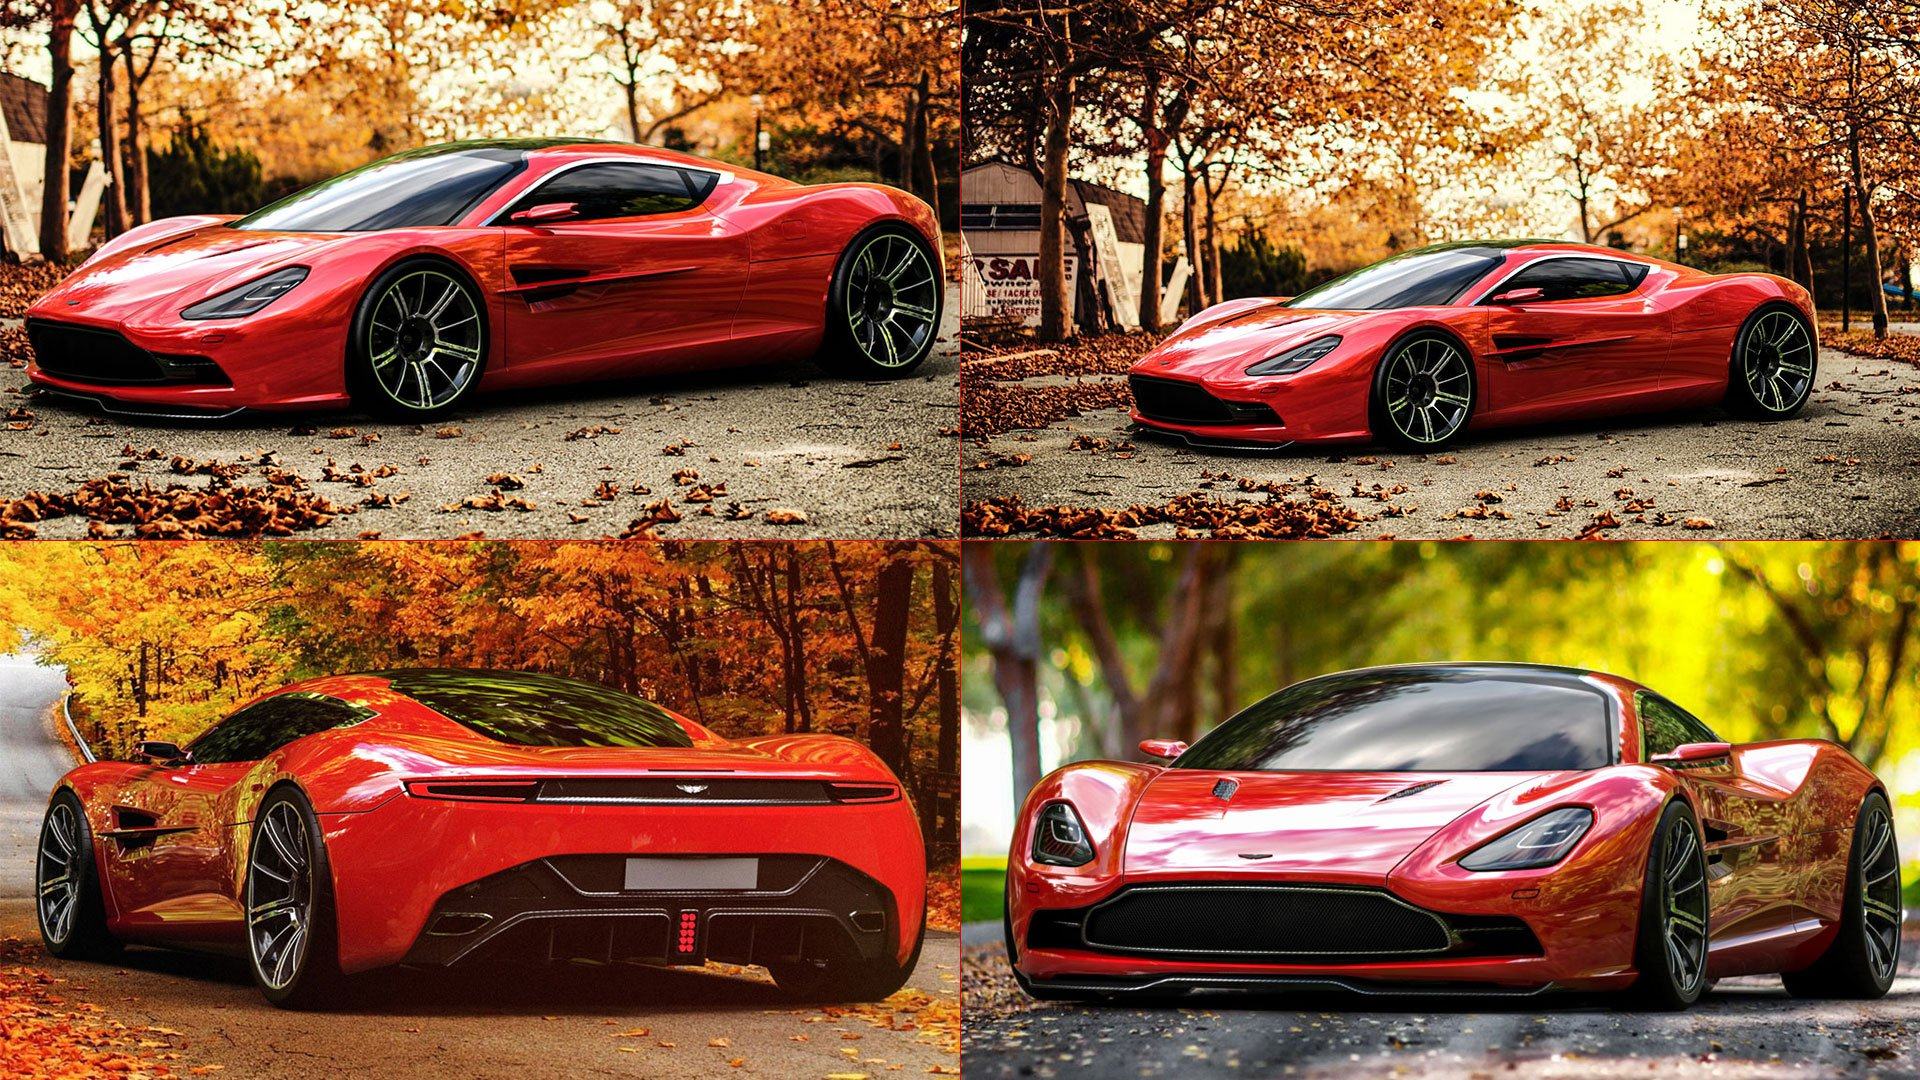 What Are Your Views On The Aston Martin Dbc Concept